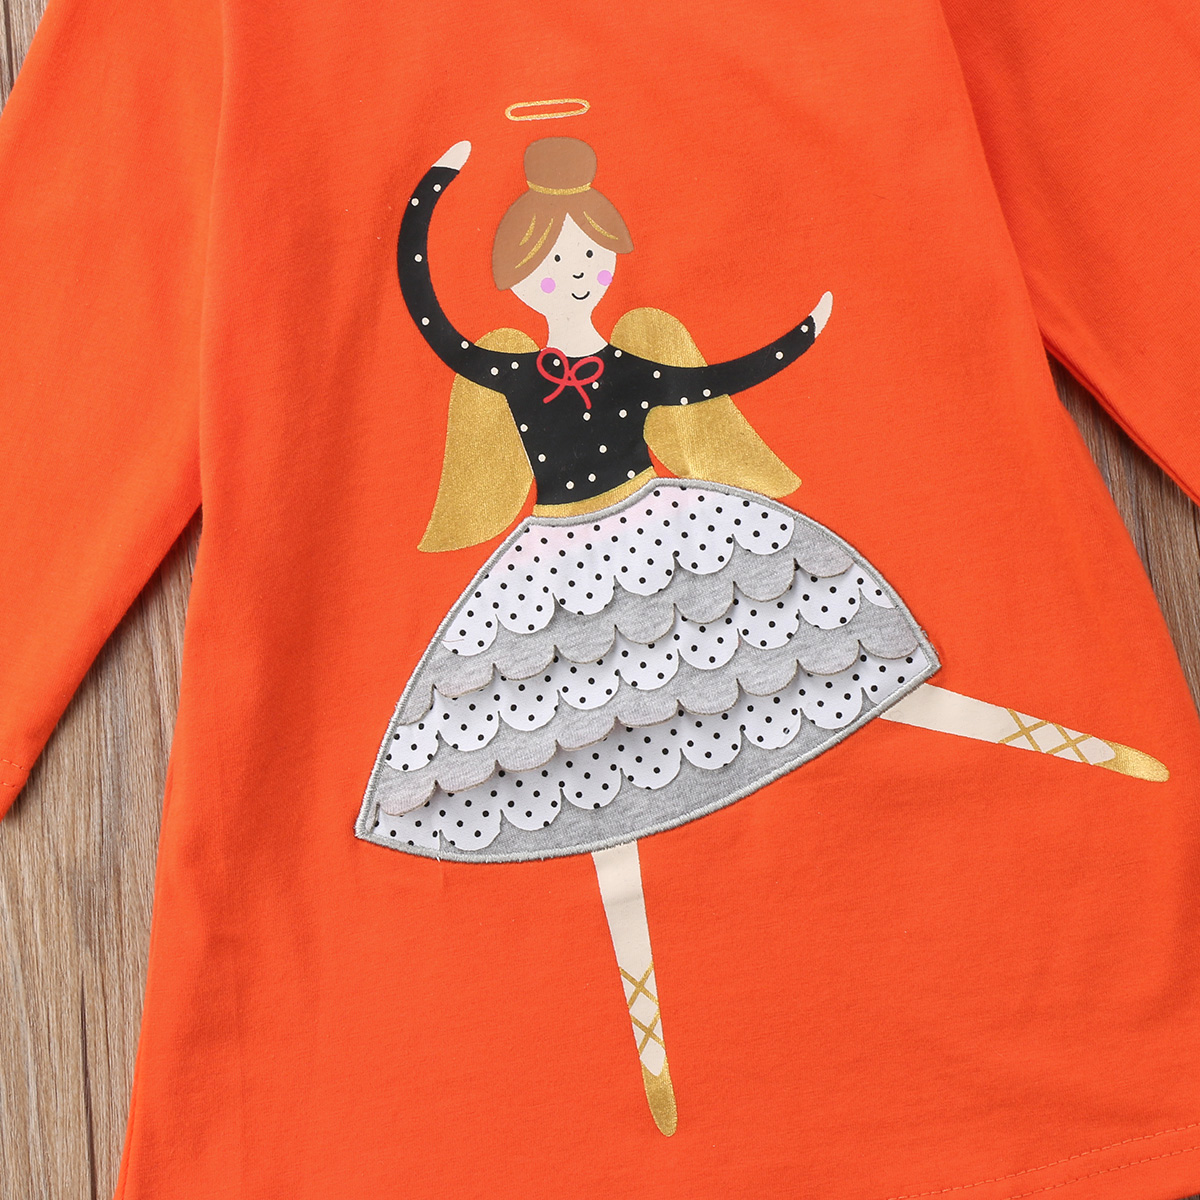 HTB1X2nVpBsmBKNjSZFFq6AT9VXaN NEWEST Baby Girl Dress with Animals Princess Long Sleeve Dresses Children Autumn Clothing for Kids